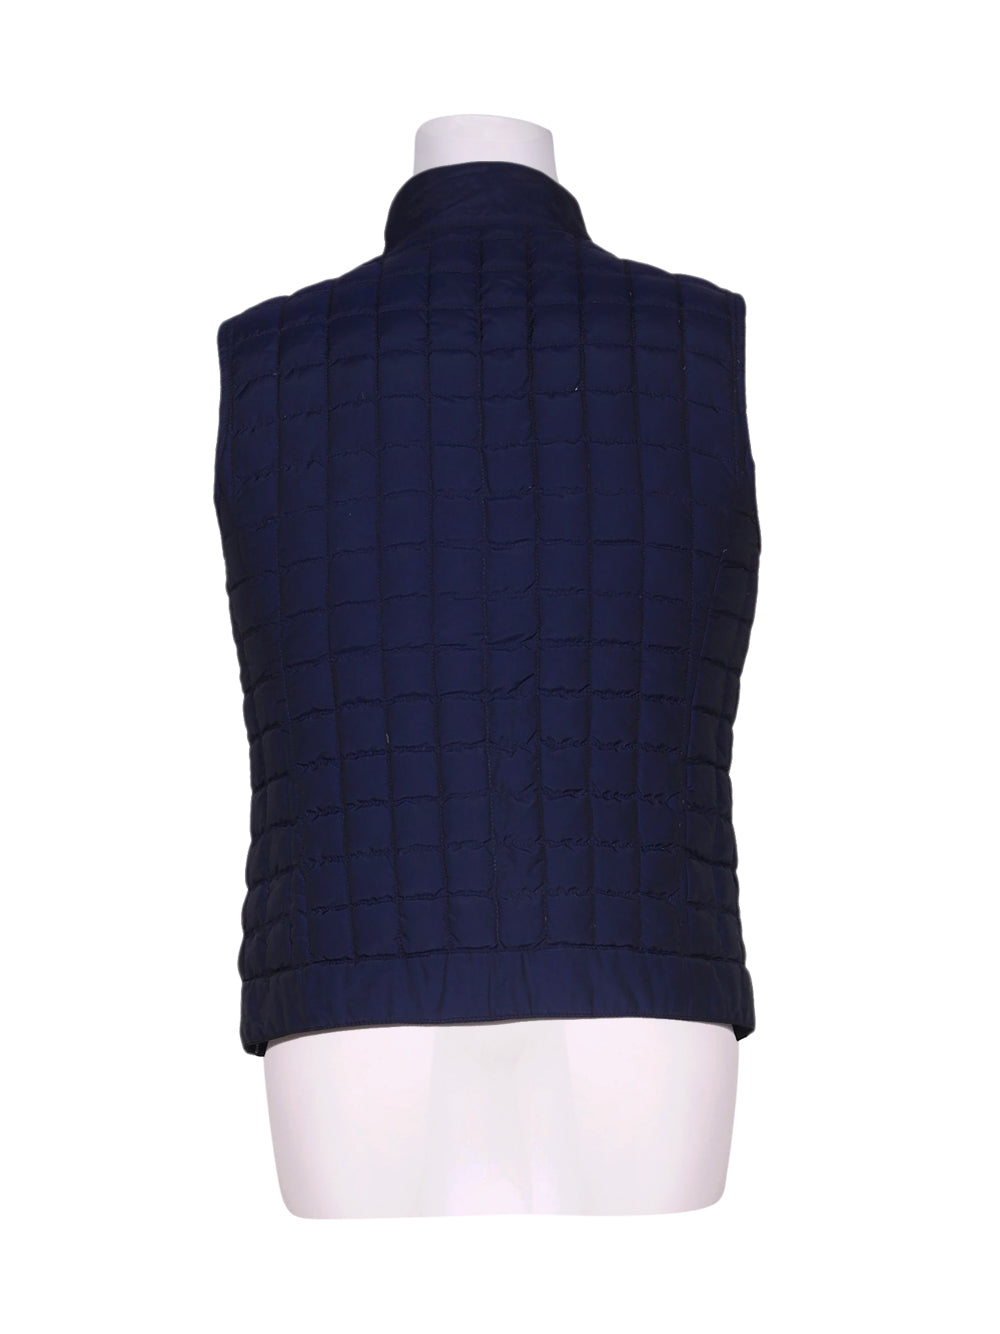 Back photo of Preloved Ciesse Blue Man's sleeveless winter coat - size 32/XXS